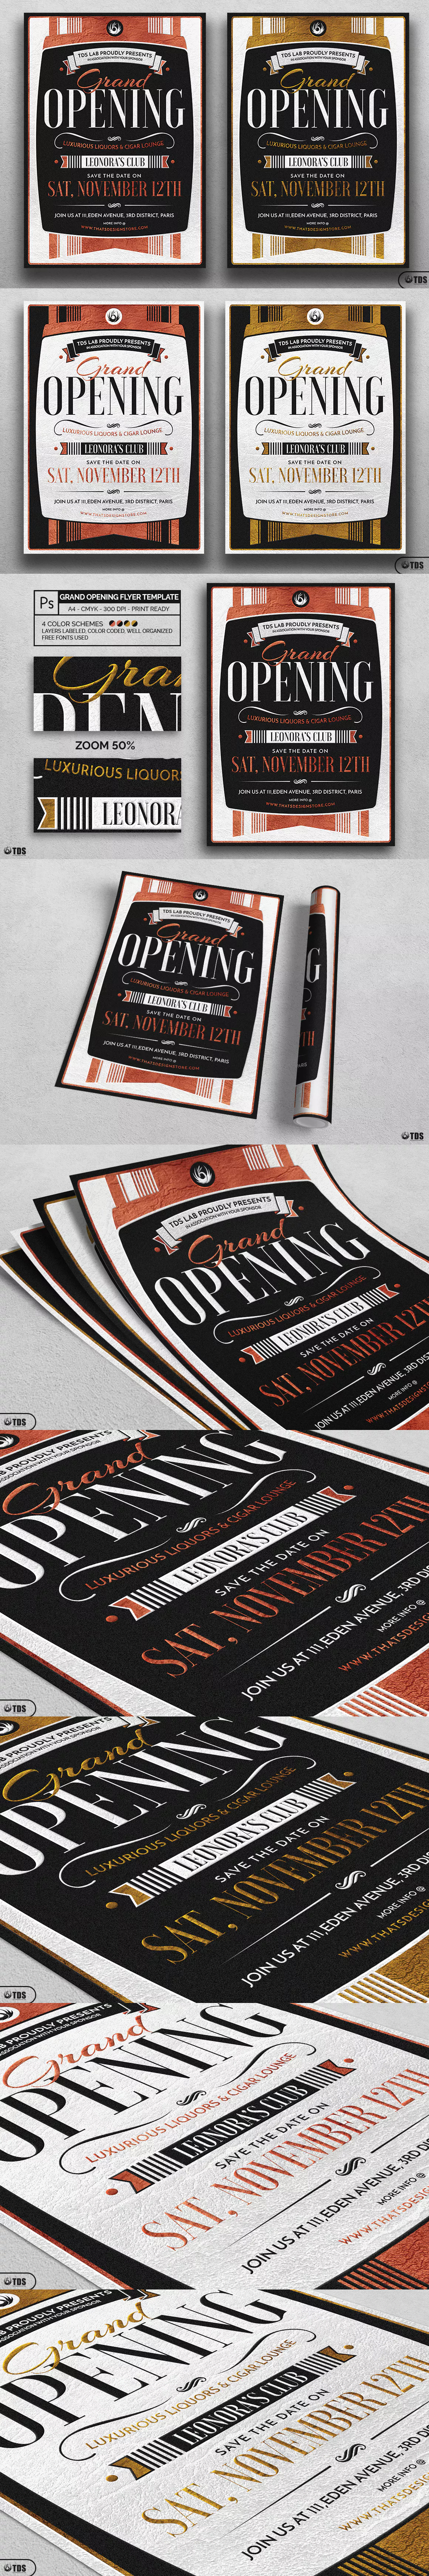 Grand Opening Flyer Template Psd  A  Flyer Design Templates